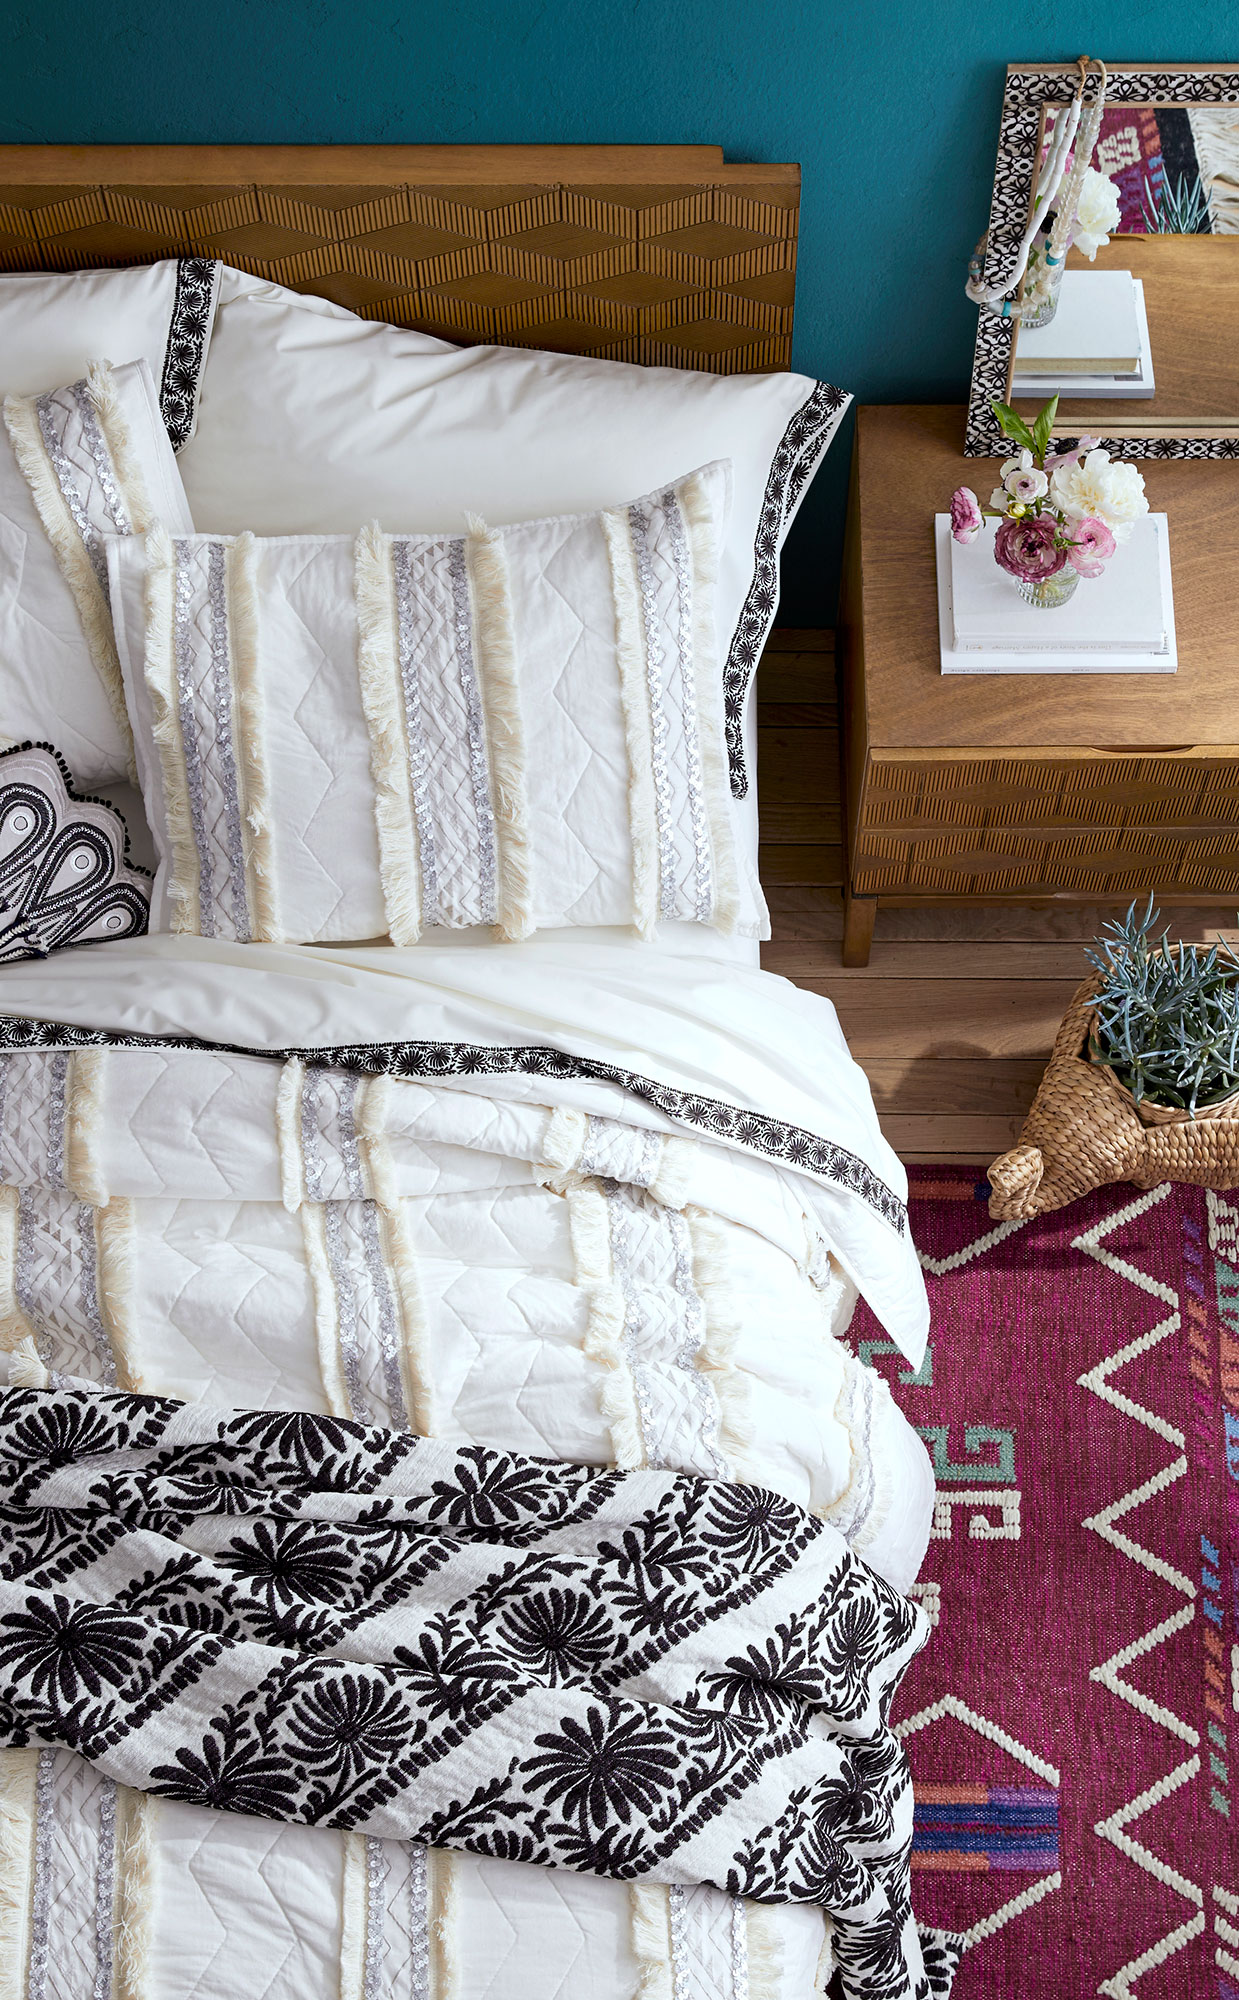 Target Is Launching a New Home Line: Here's Everything We Know About 'Opalhouse'